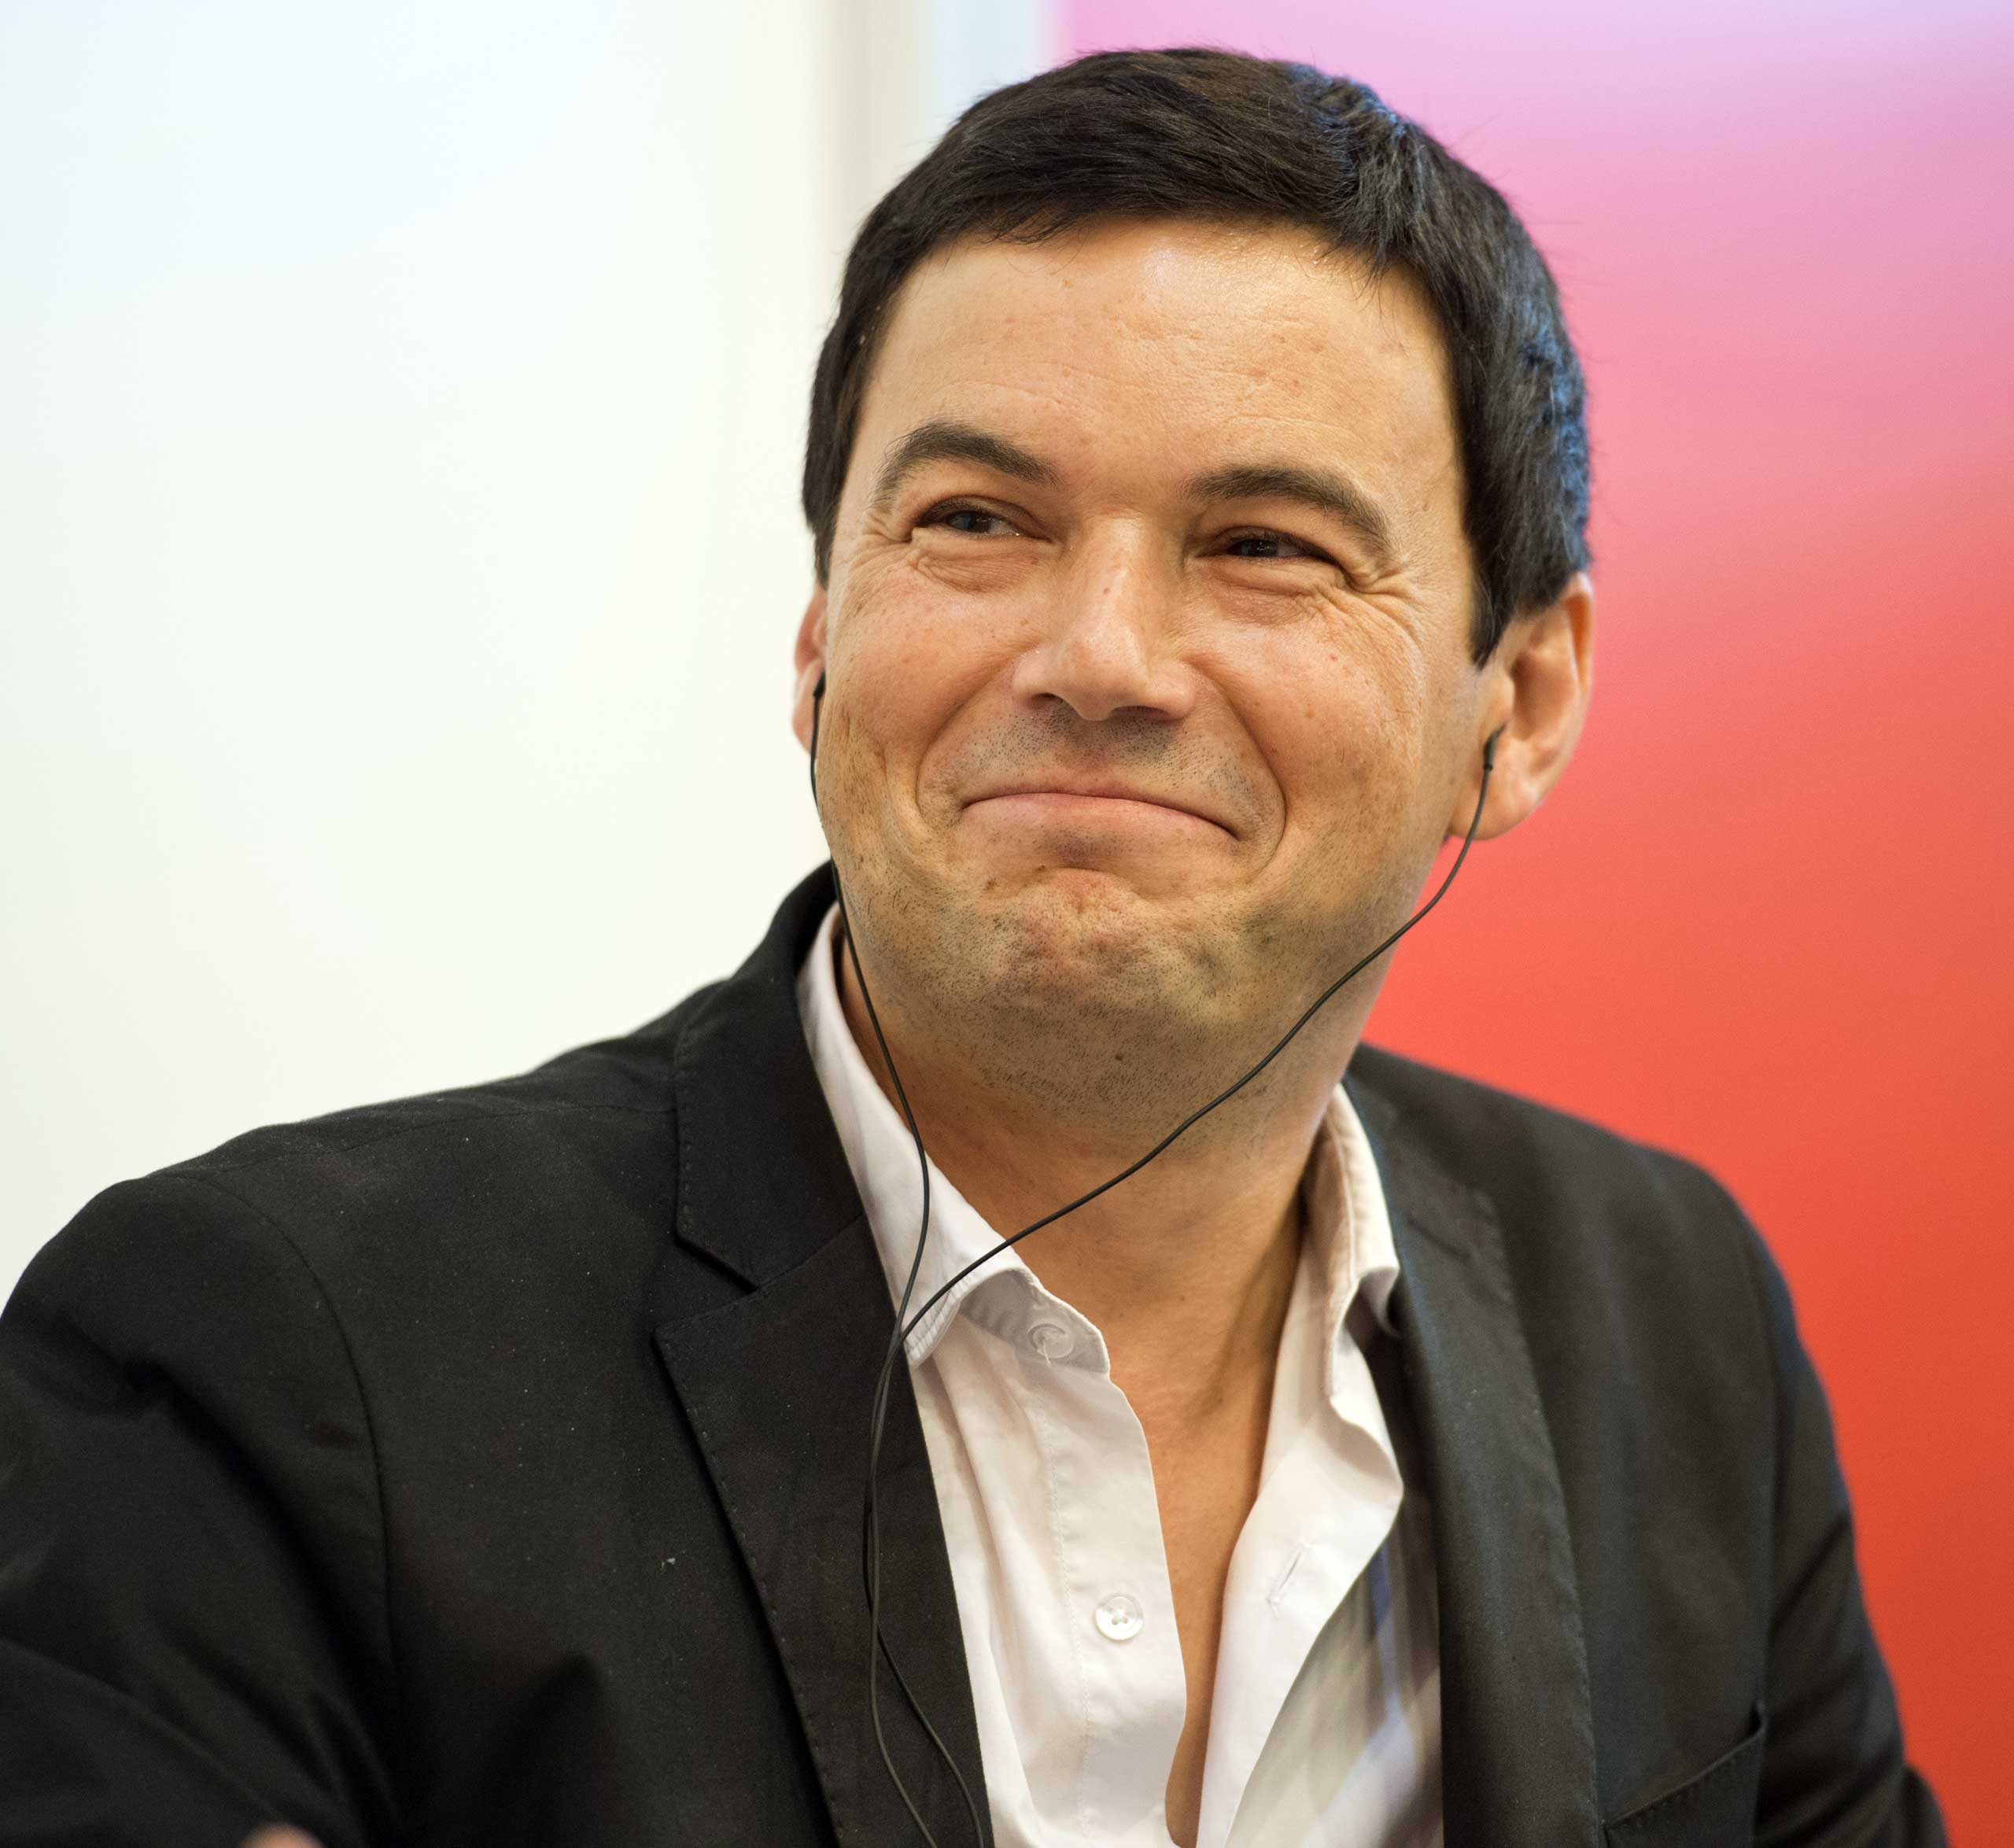 Economist Thomas Piketty in Frankfurt, Germany, in Oct. 2014.